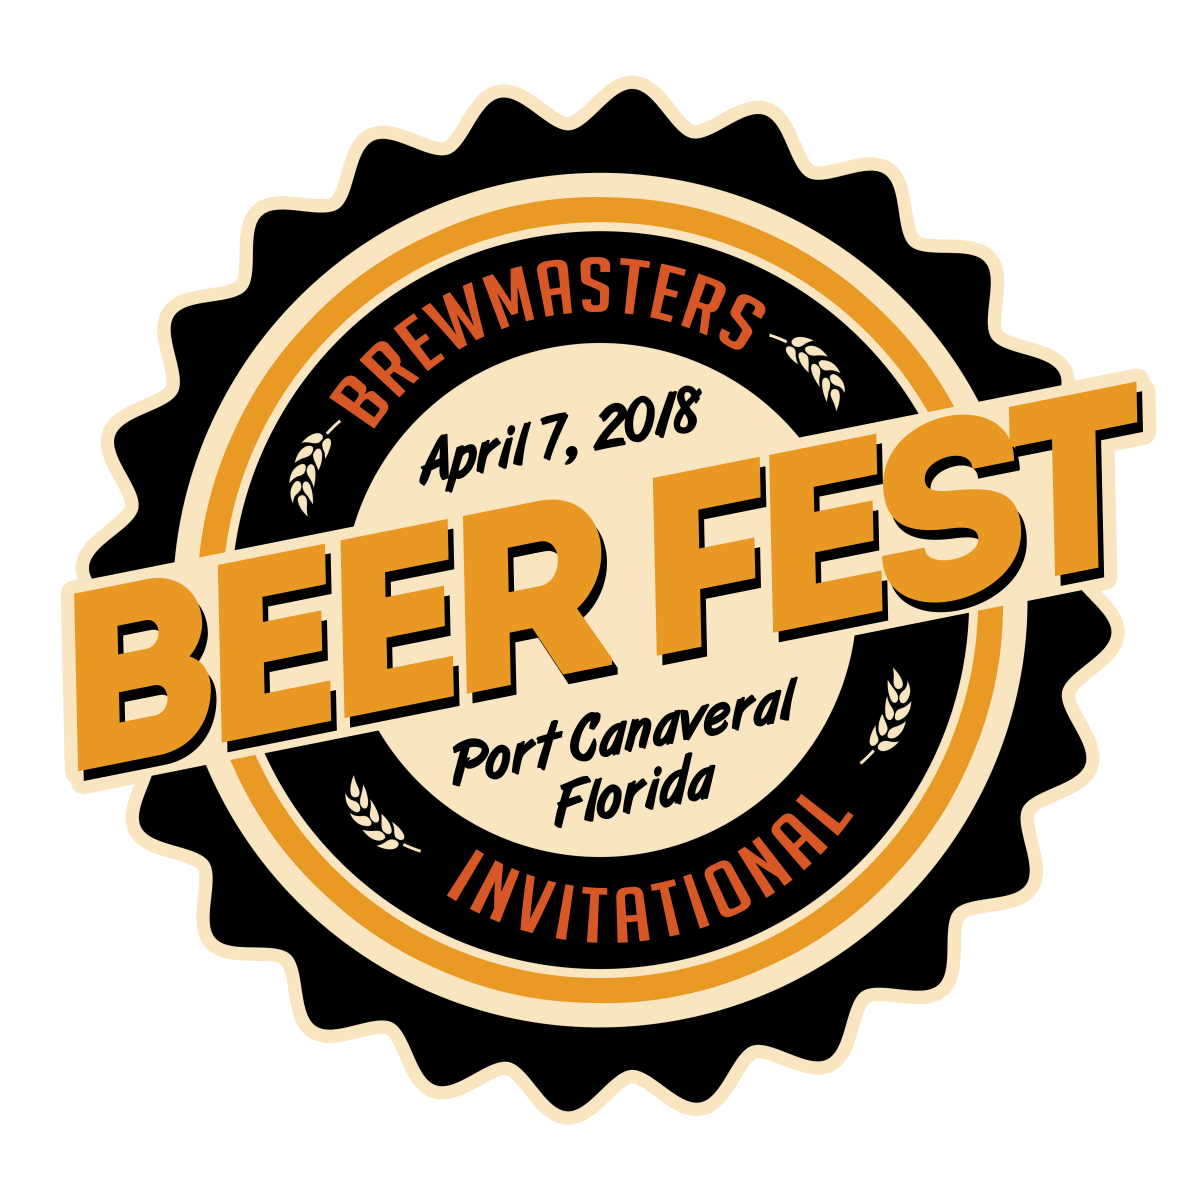 craft beer festival 4th annual brewmasters invitational festival planned 1408